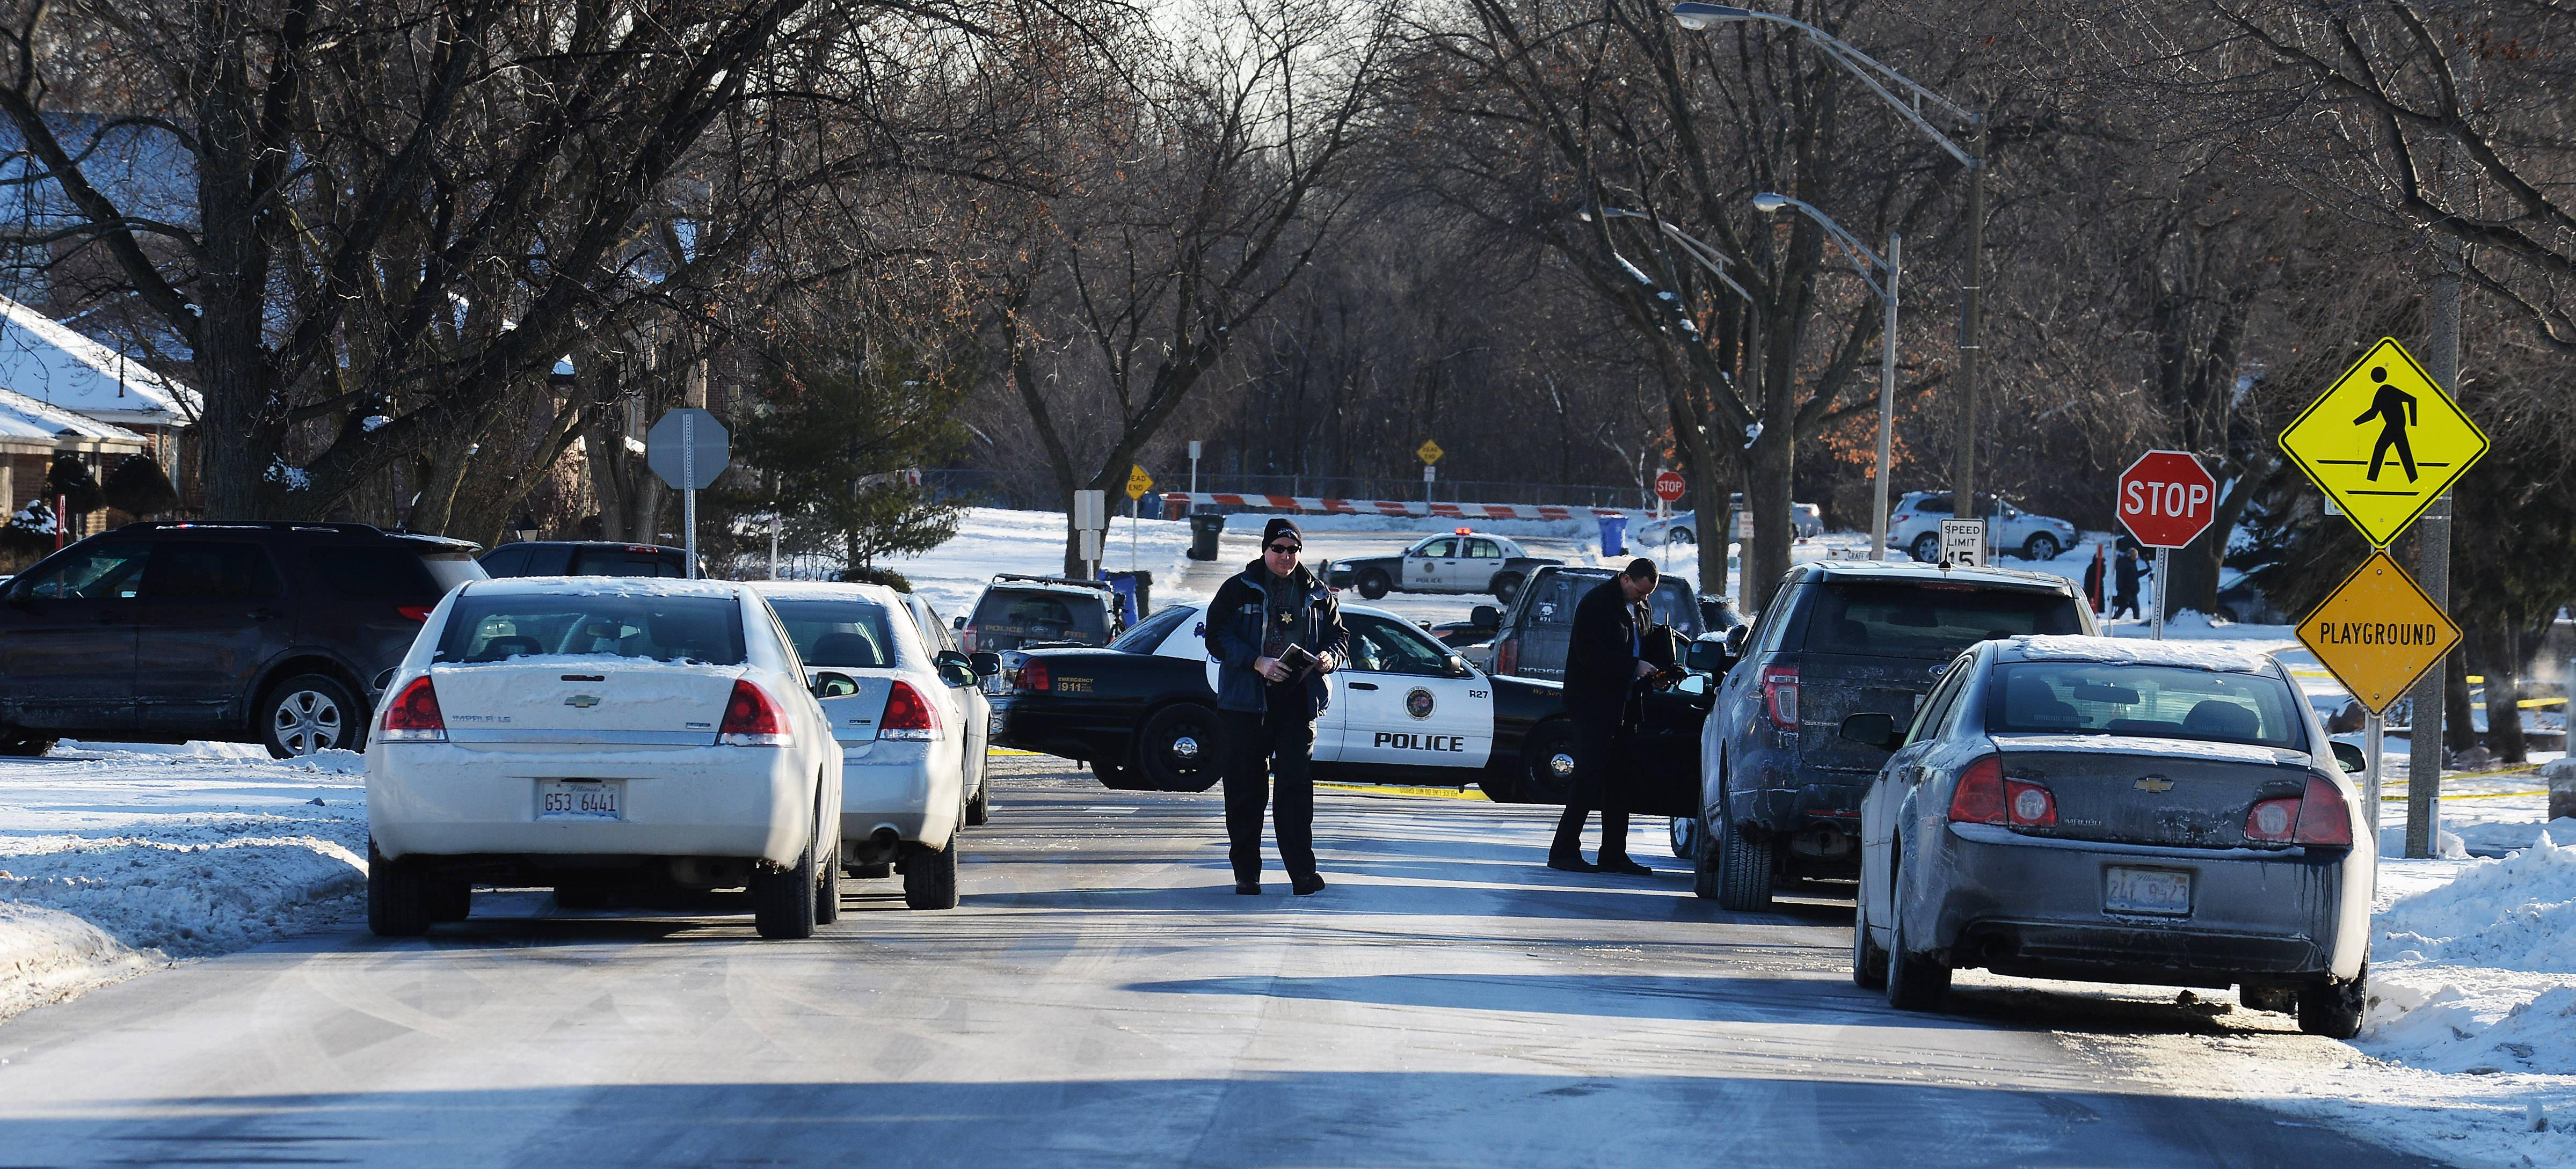 Off-duty Rosemont cop shoots and kills brother-in-law